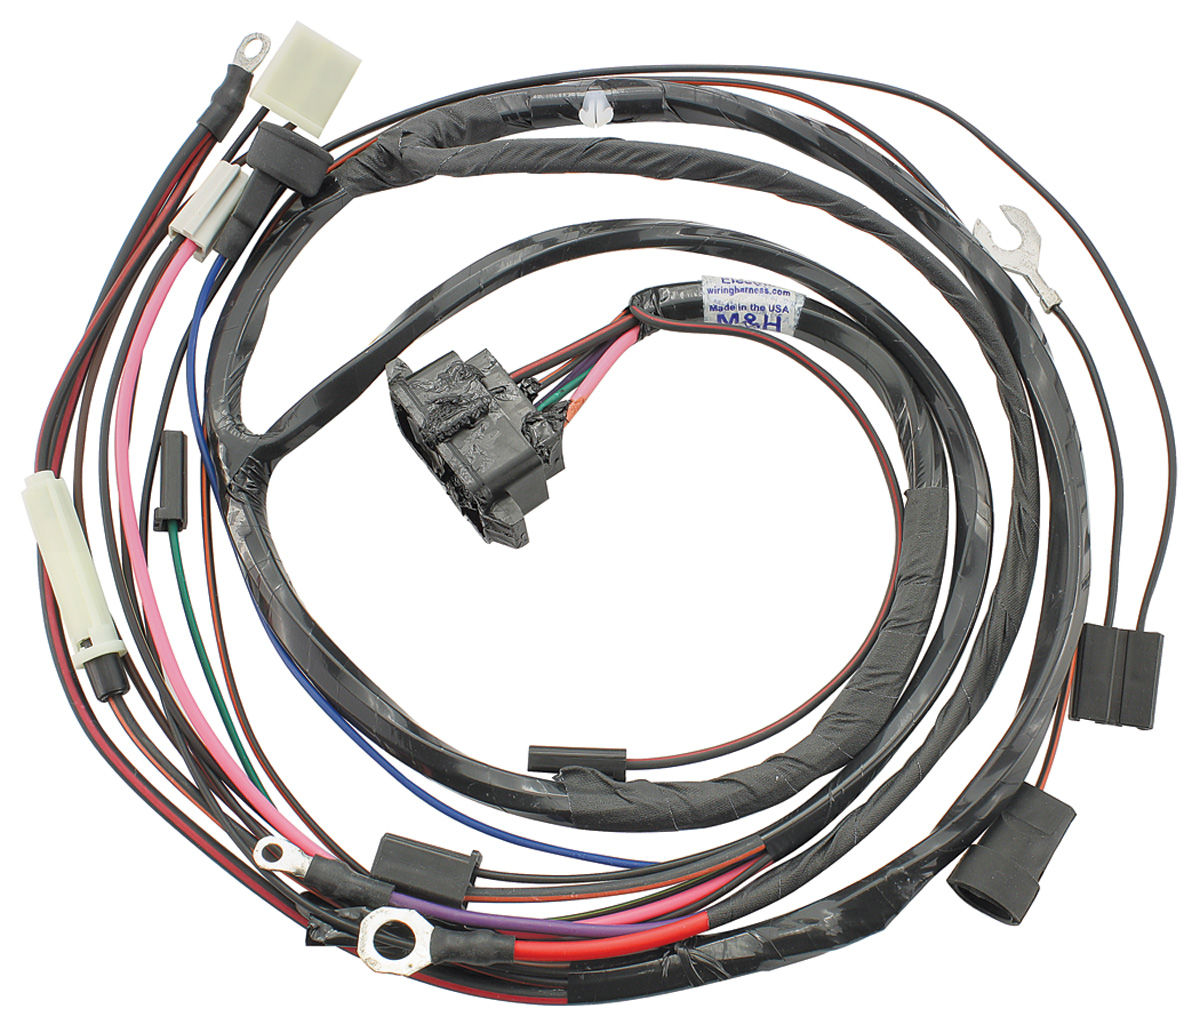 Gto Wiring Harness - Wiring Diagram Dash on 69 ford torino wiring diagram, 69 dodge dart wiring diagram, 69 dodge charger wiring diagram,